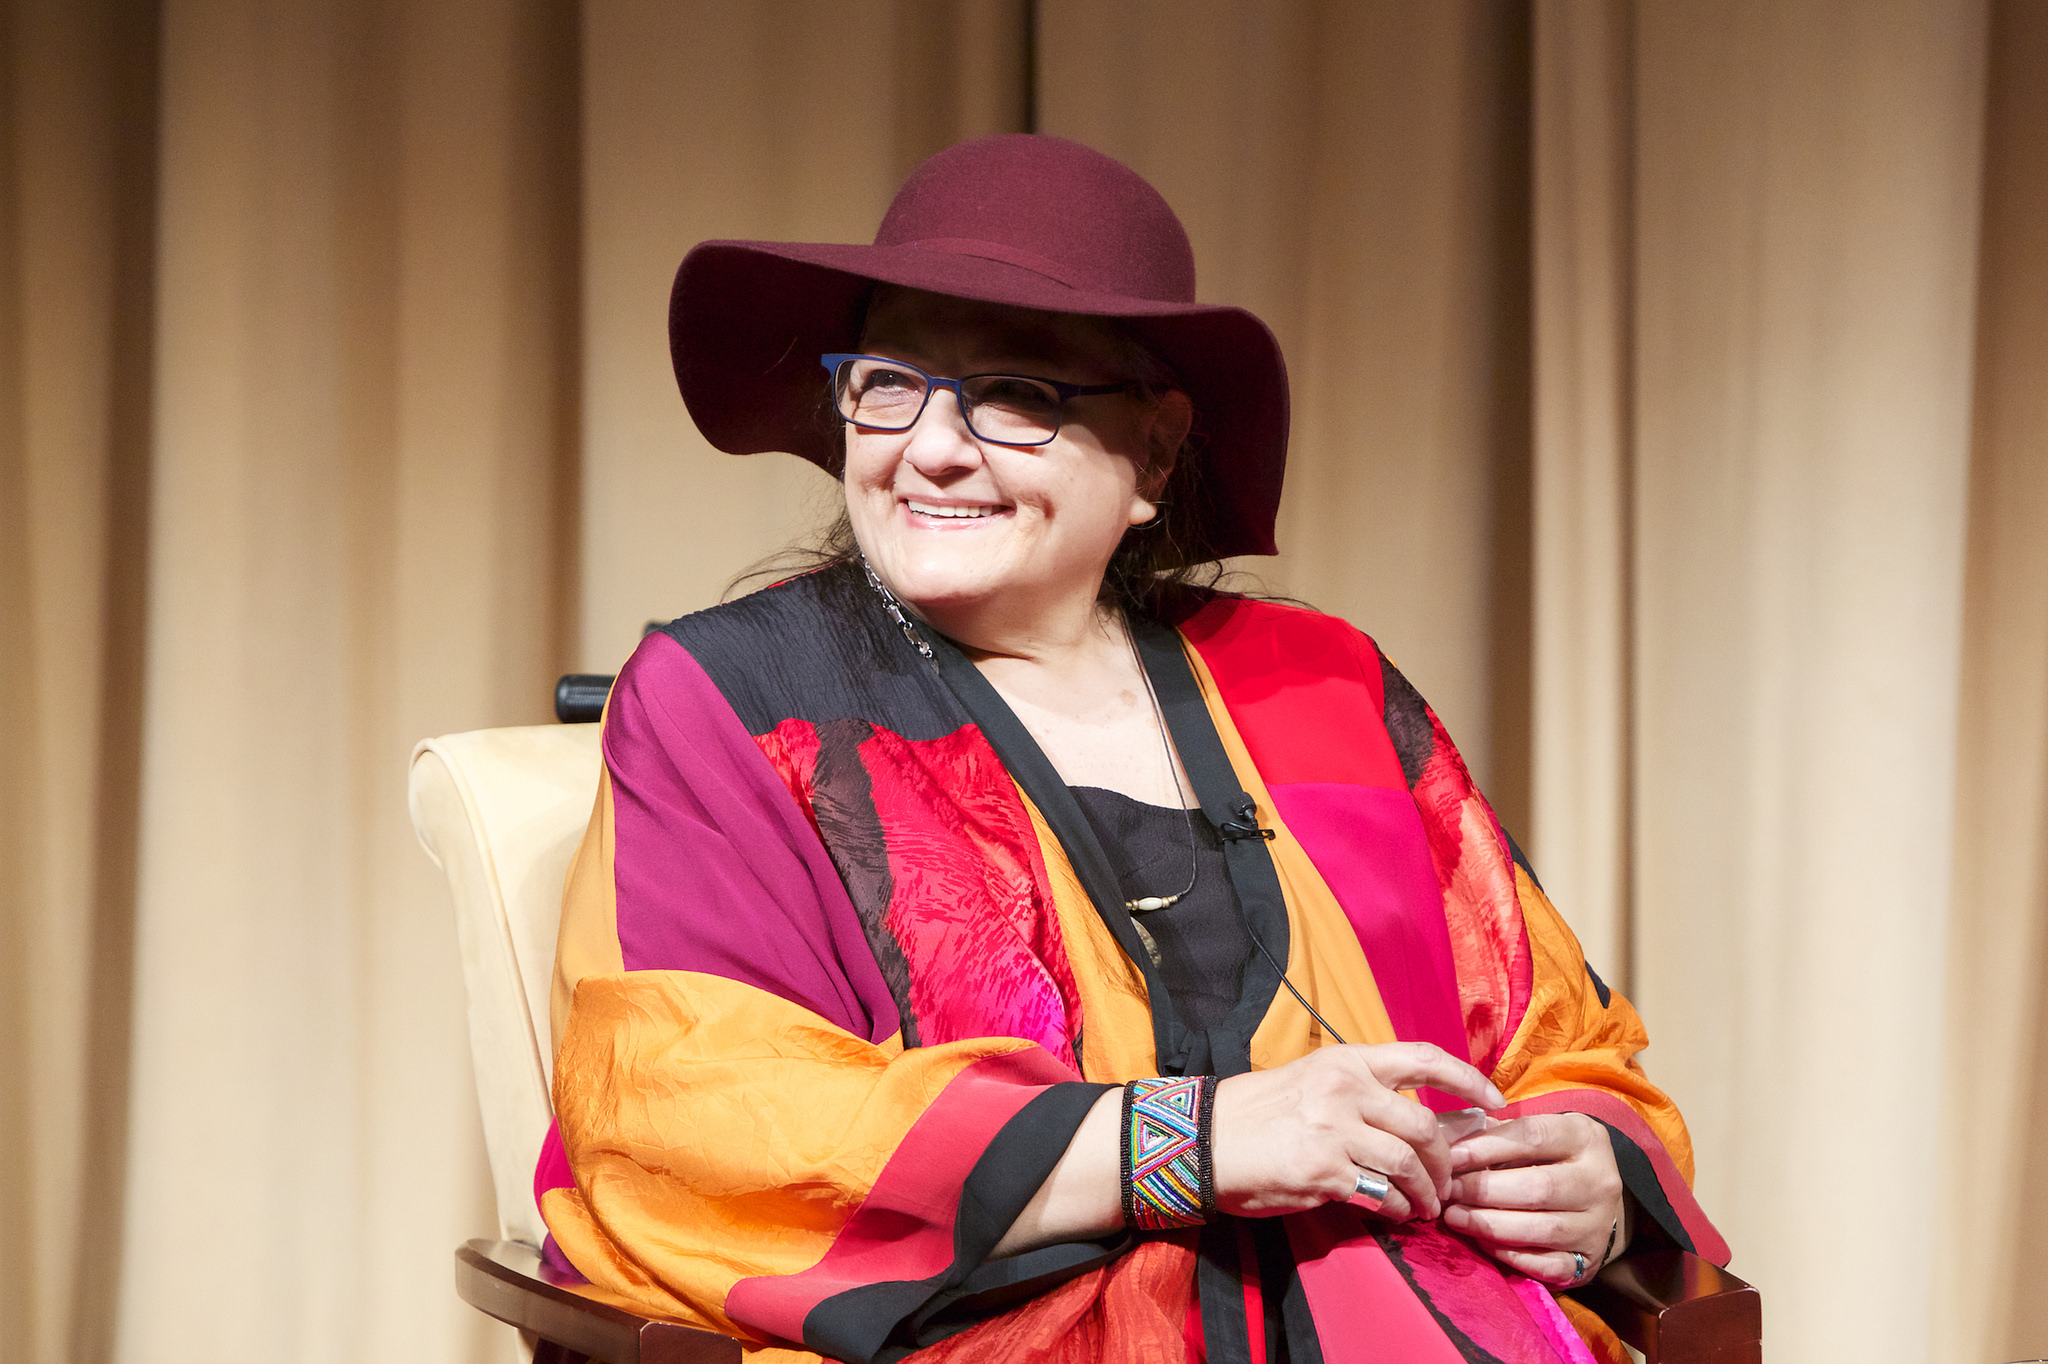 'I feel fine': Legendary activist Suzan Shown Harjo on living with COVID-19